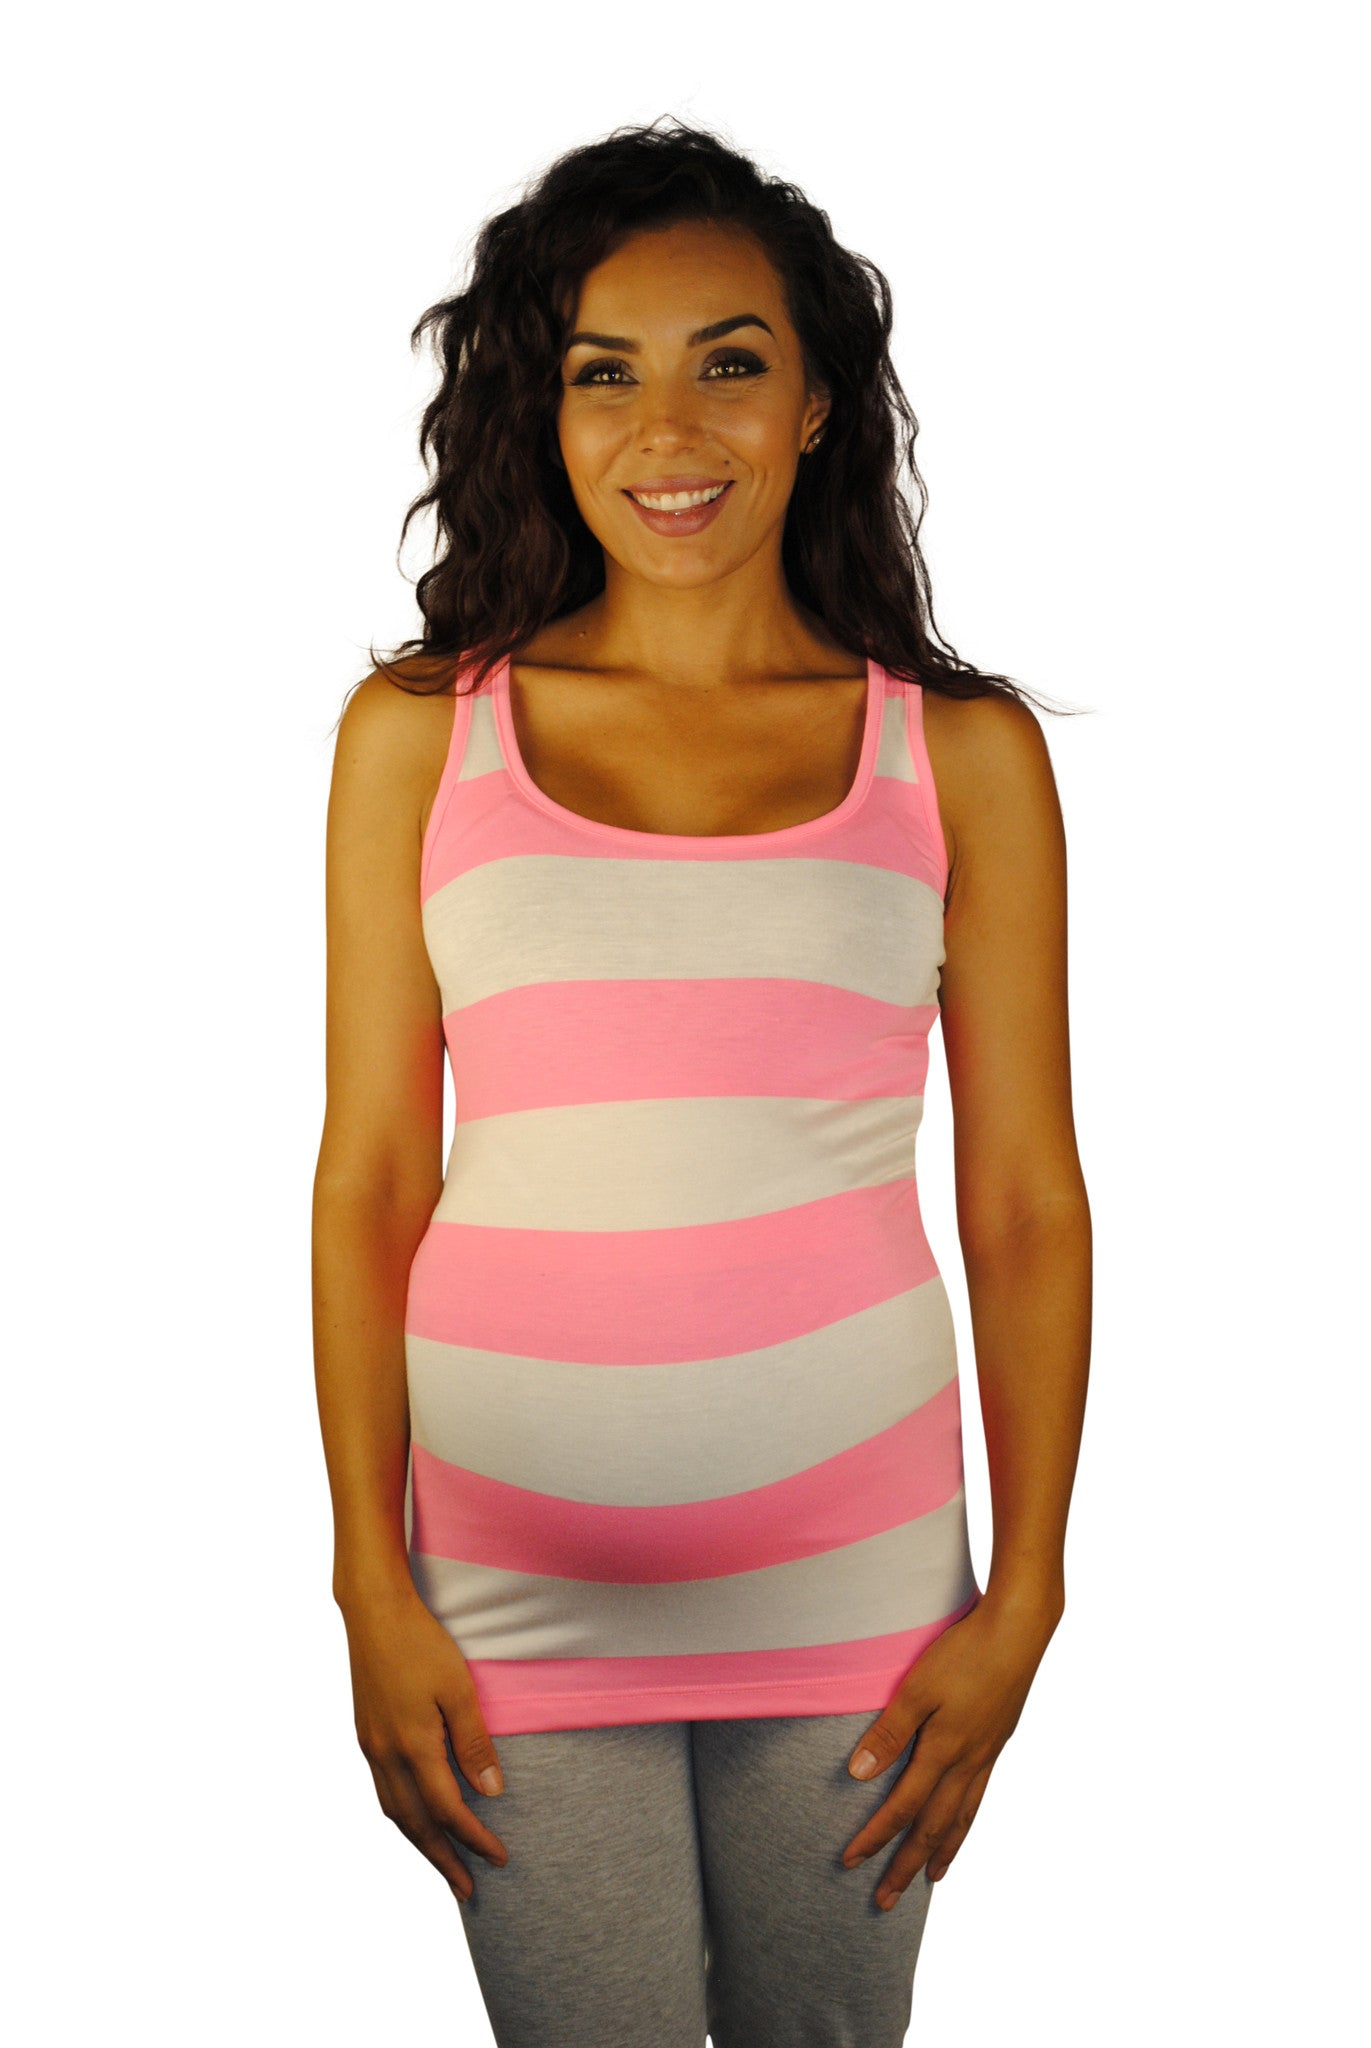 Shop Motherhood Maternity Nursing Striped Top online at topinsurances.ga With a lift-up double-opening for nursing, this top by A Pea in the Pod is a must-have for new moms.